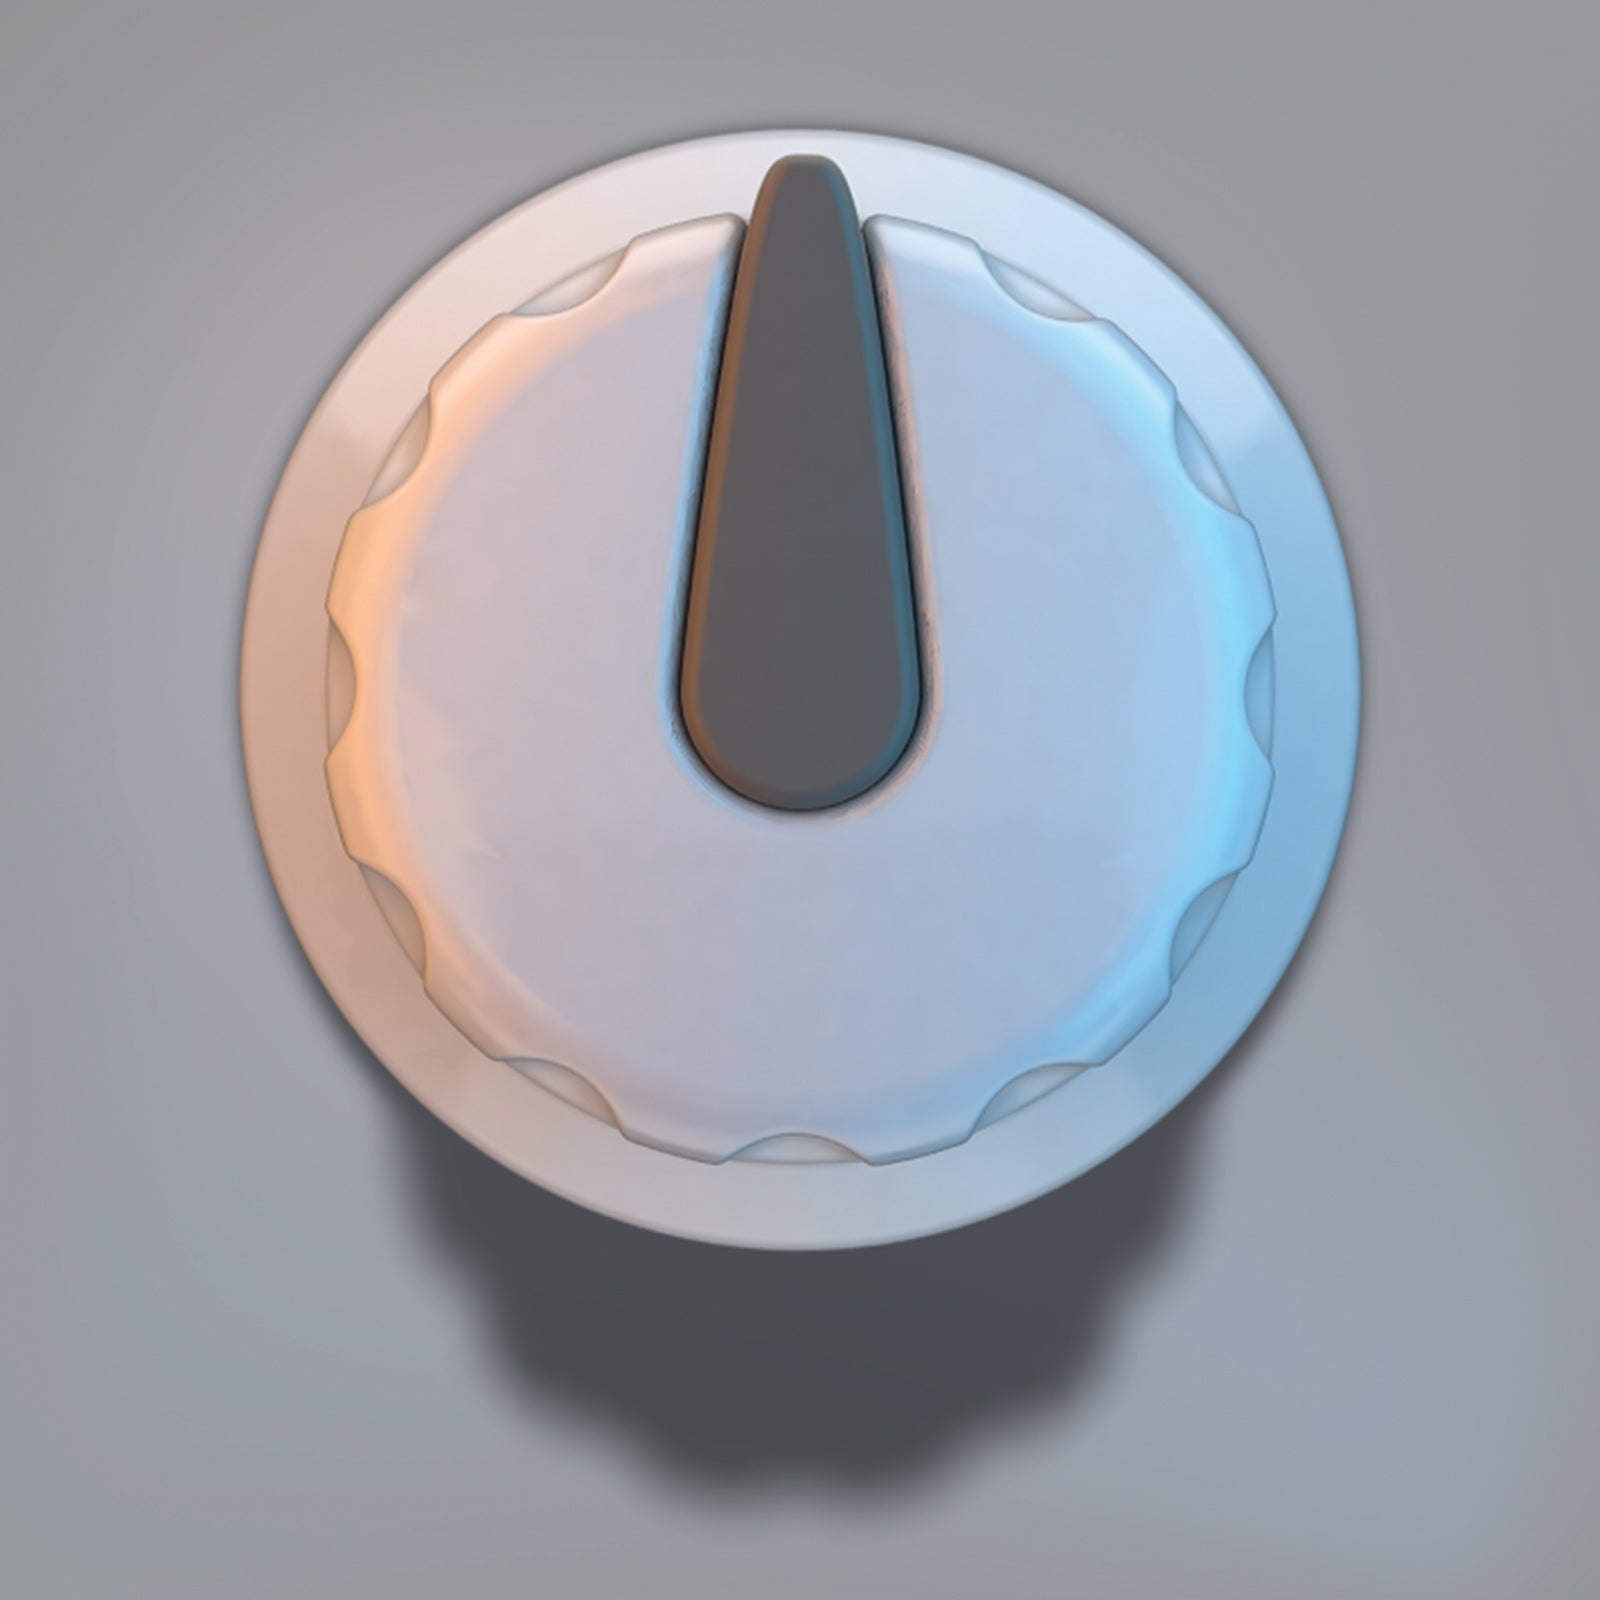 Dial light audio knob 3D model